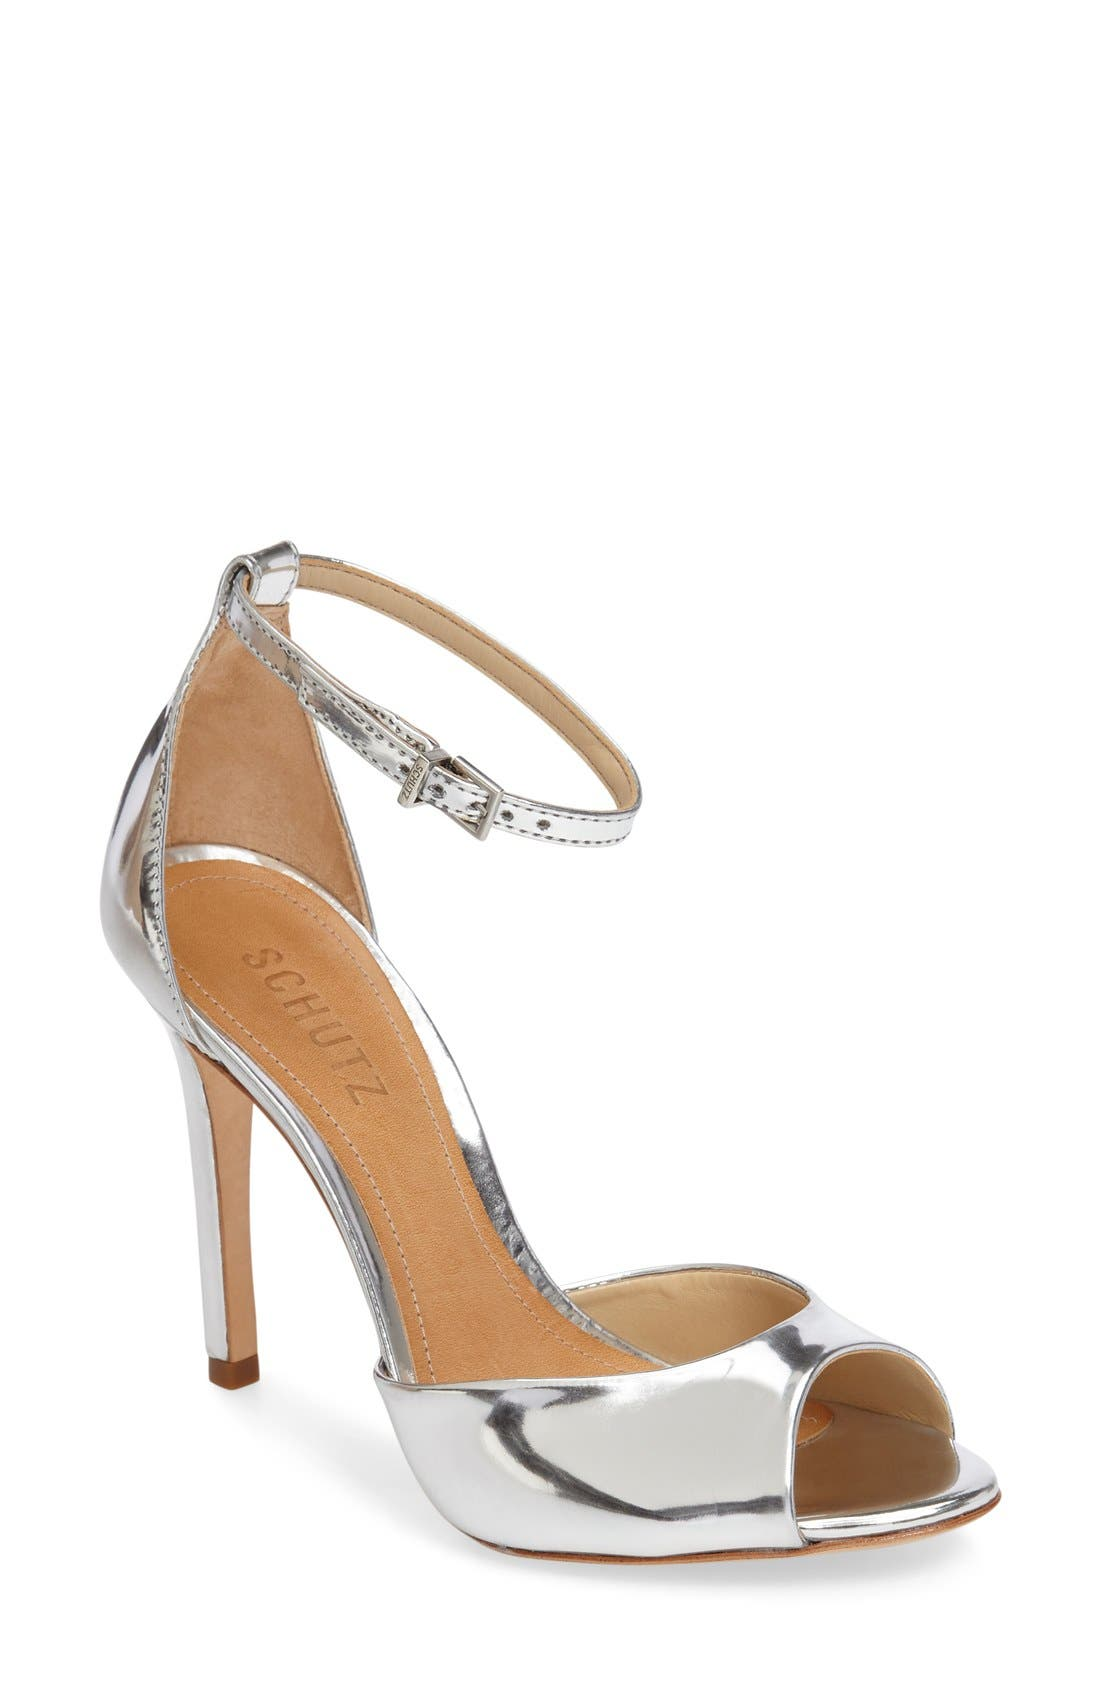 Saasha Lee Ankle Strap Sandal,                             Main thumbnail 1, color,                             Silver Leather